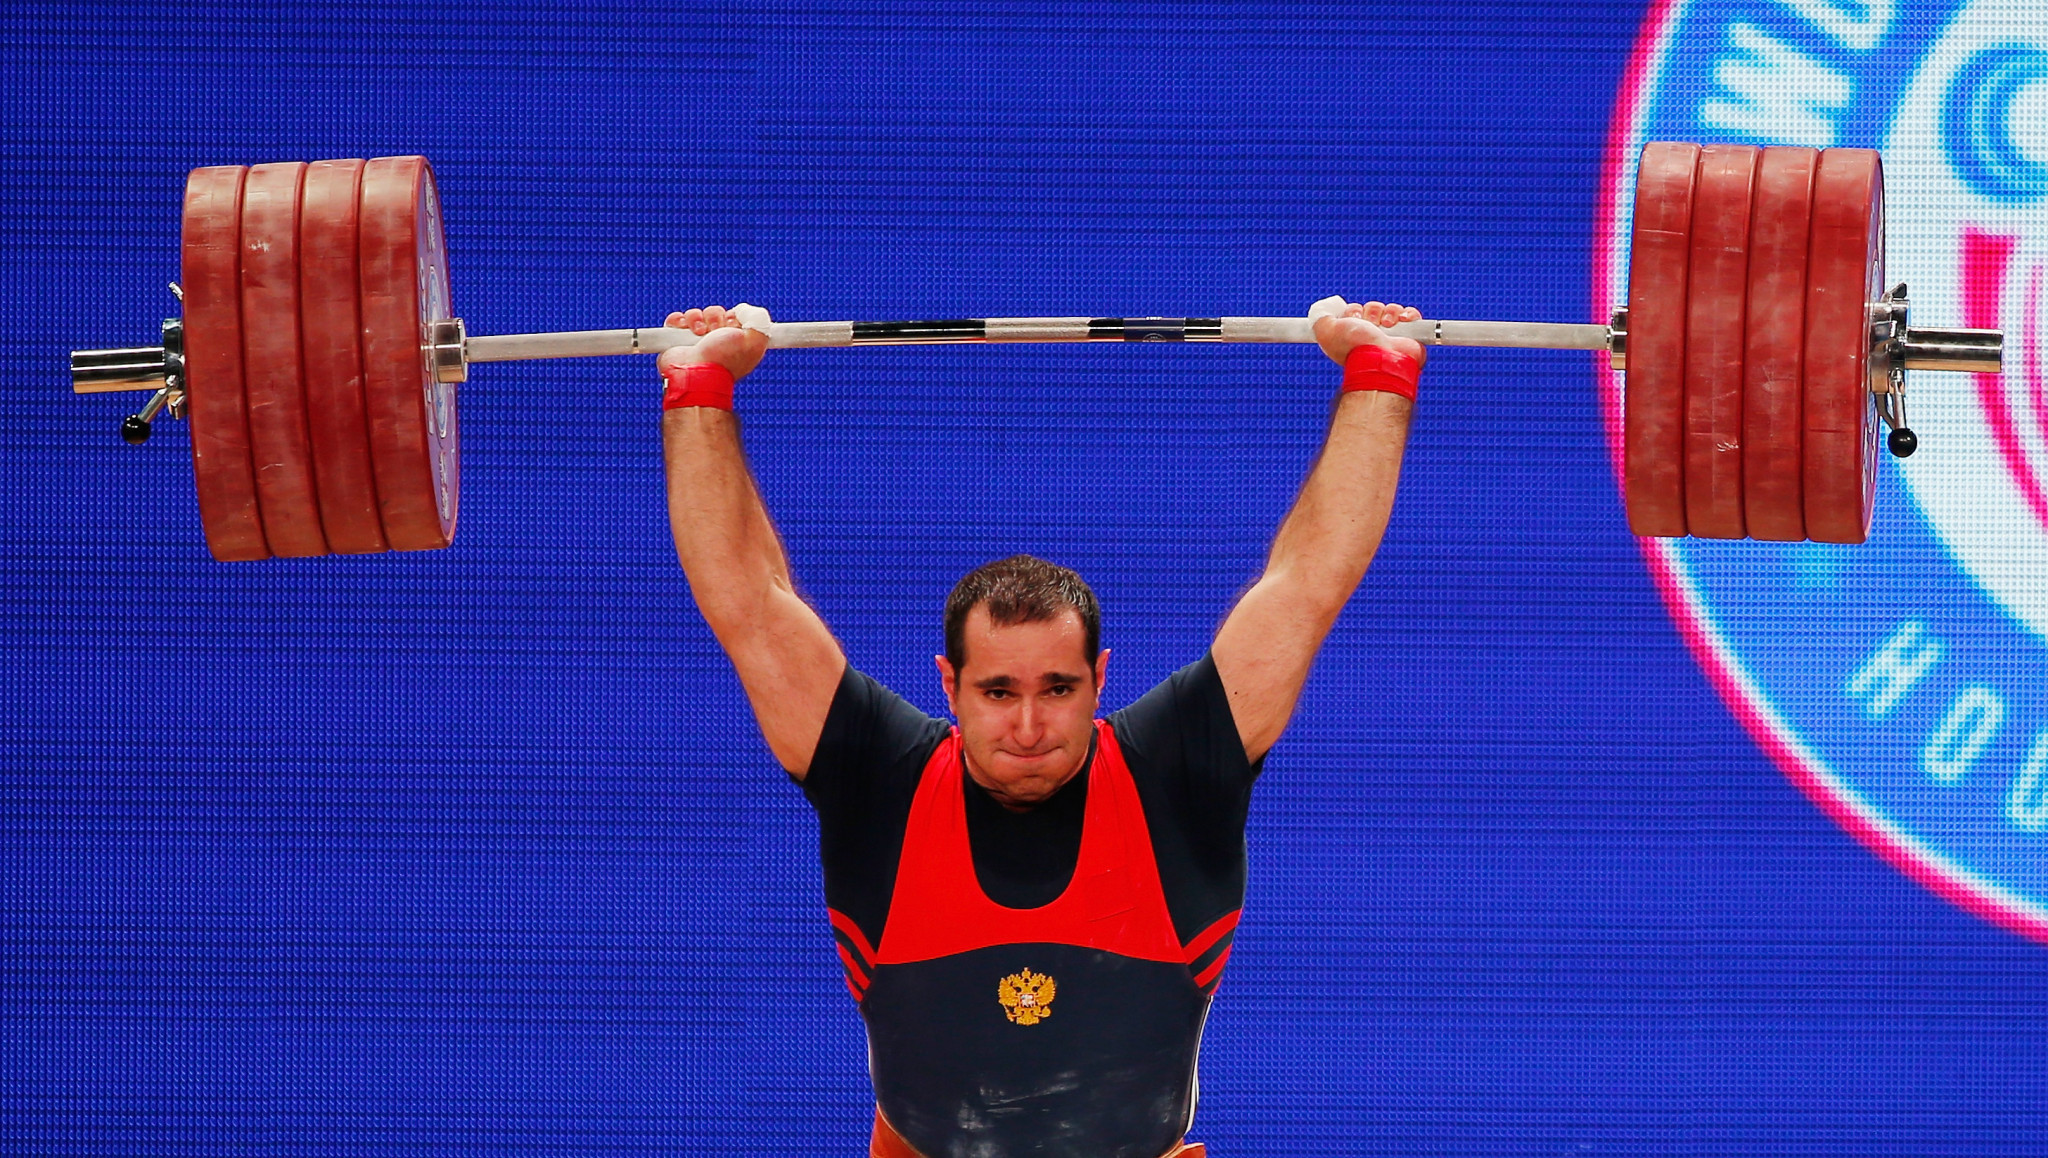 Having already been banned for Rio 2016, Russia will now miss this year's IWF World Championships in Anaheim after they were among nine countries banned for doping  ©Getty Images